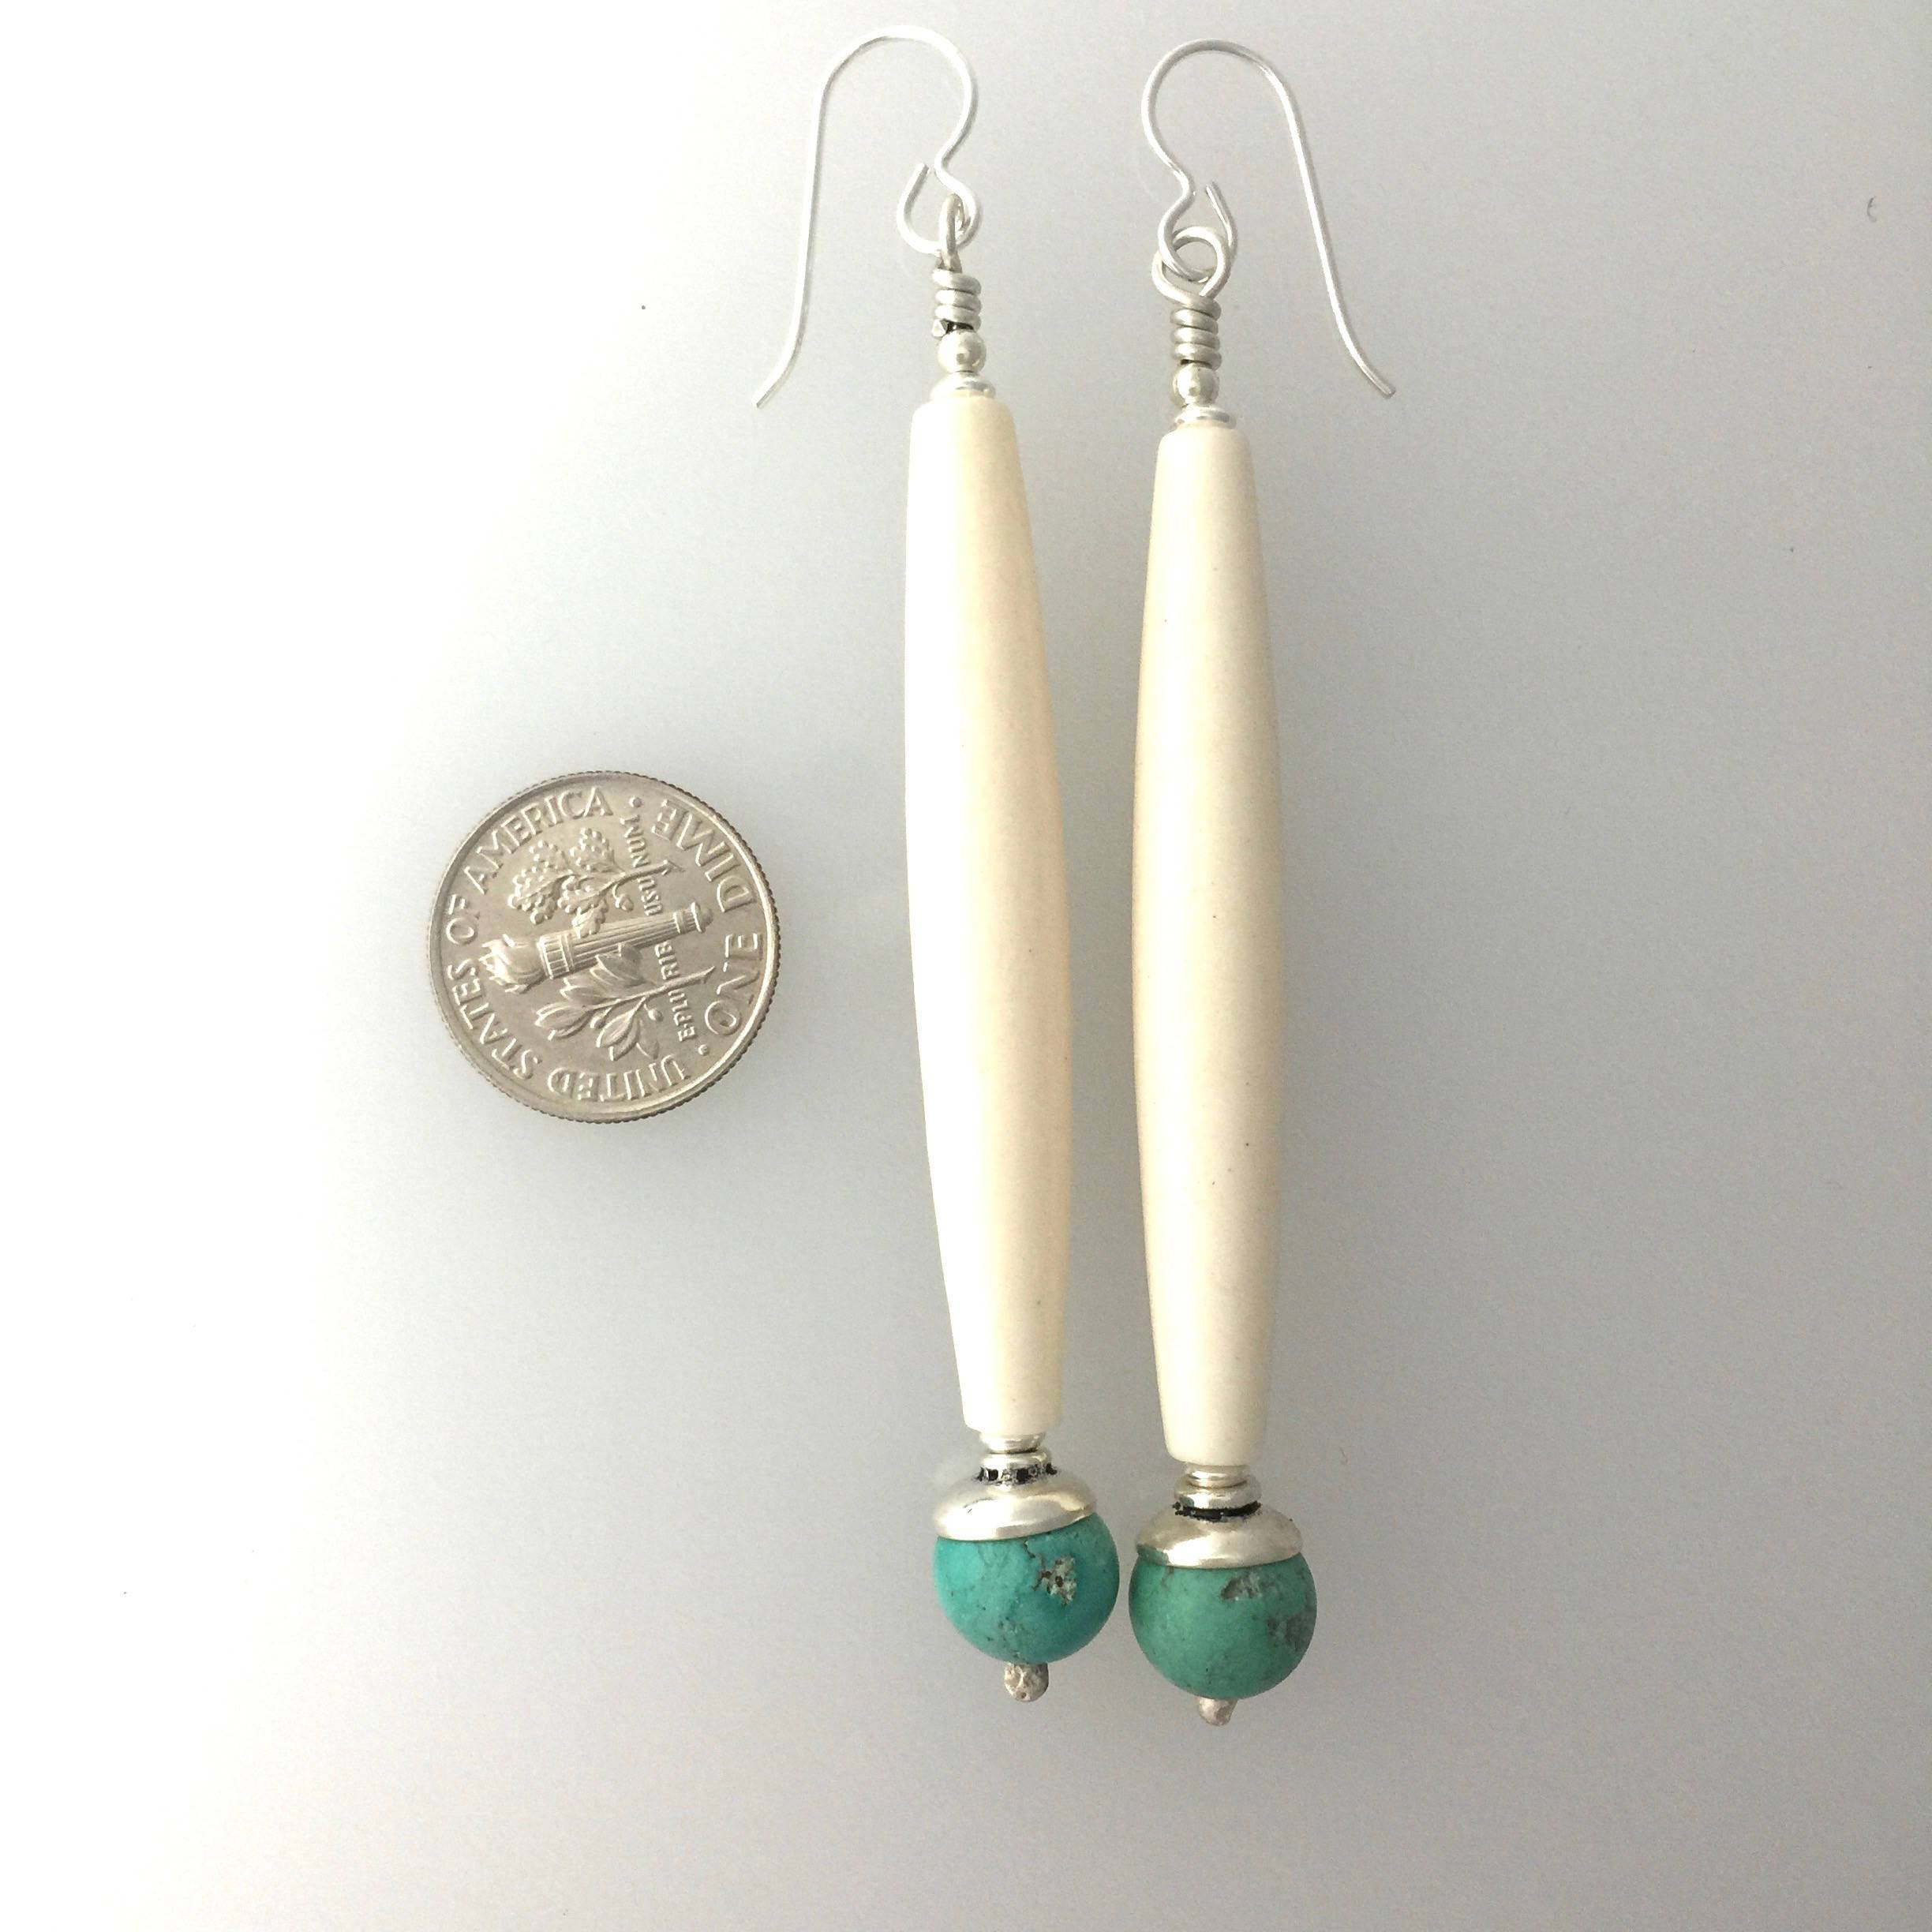 Turquoise, Hairpipe Bone and Sterling Silver Earrings #a